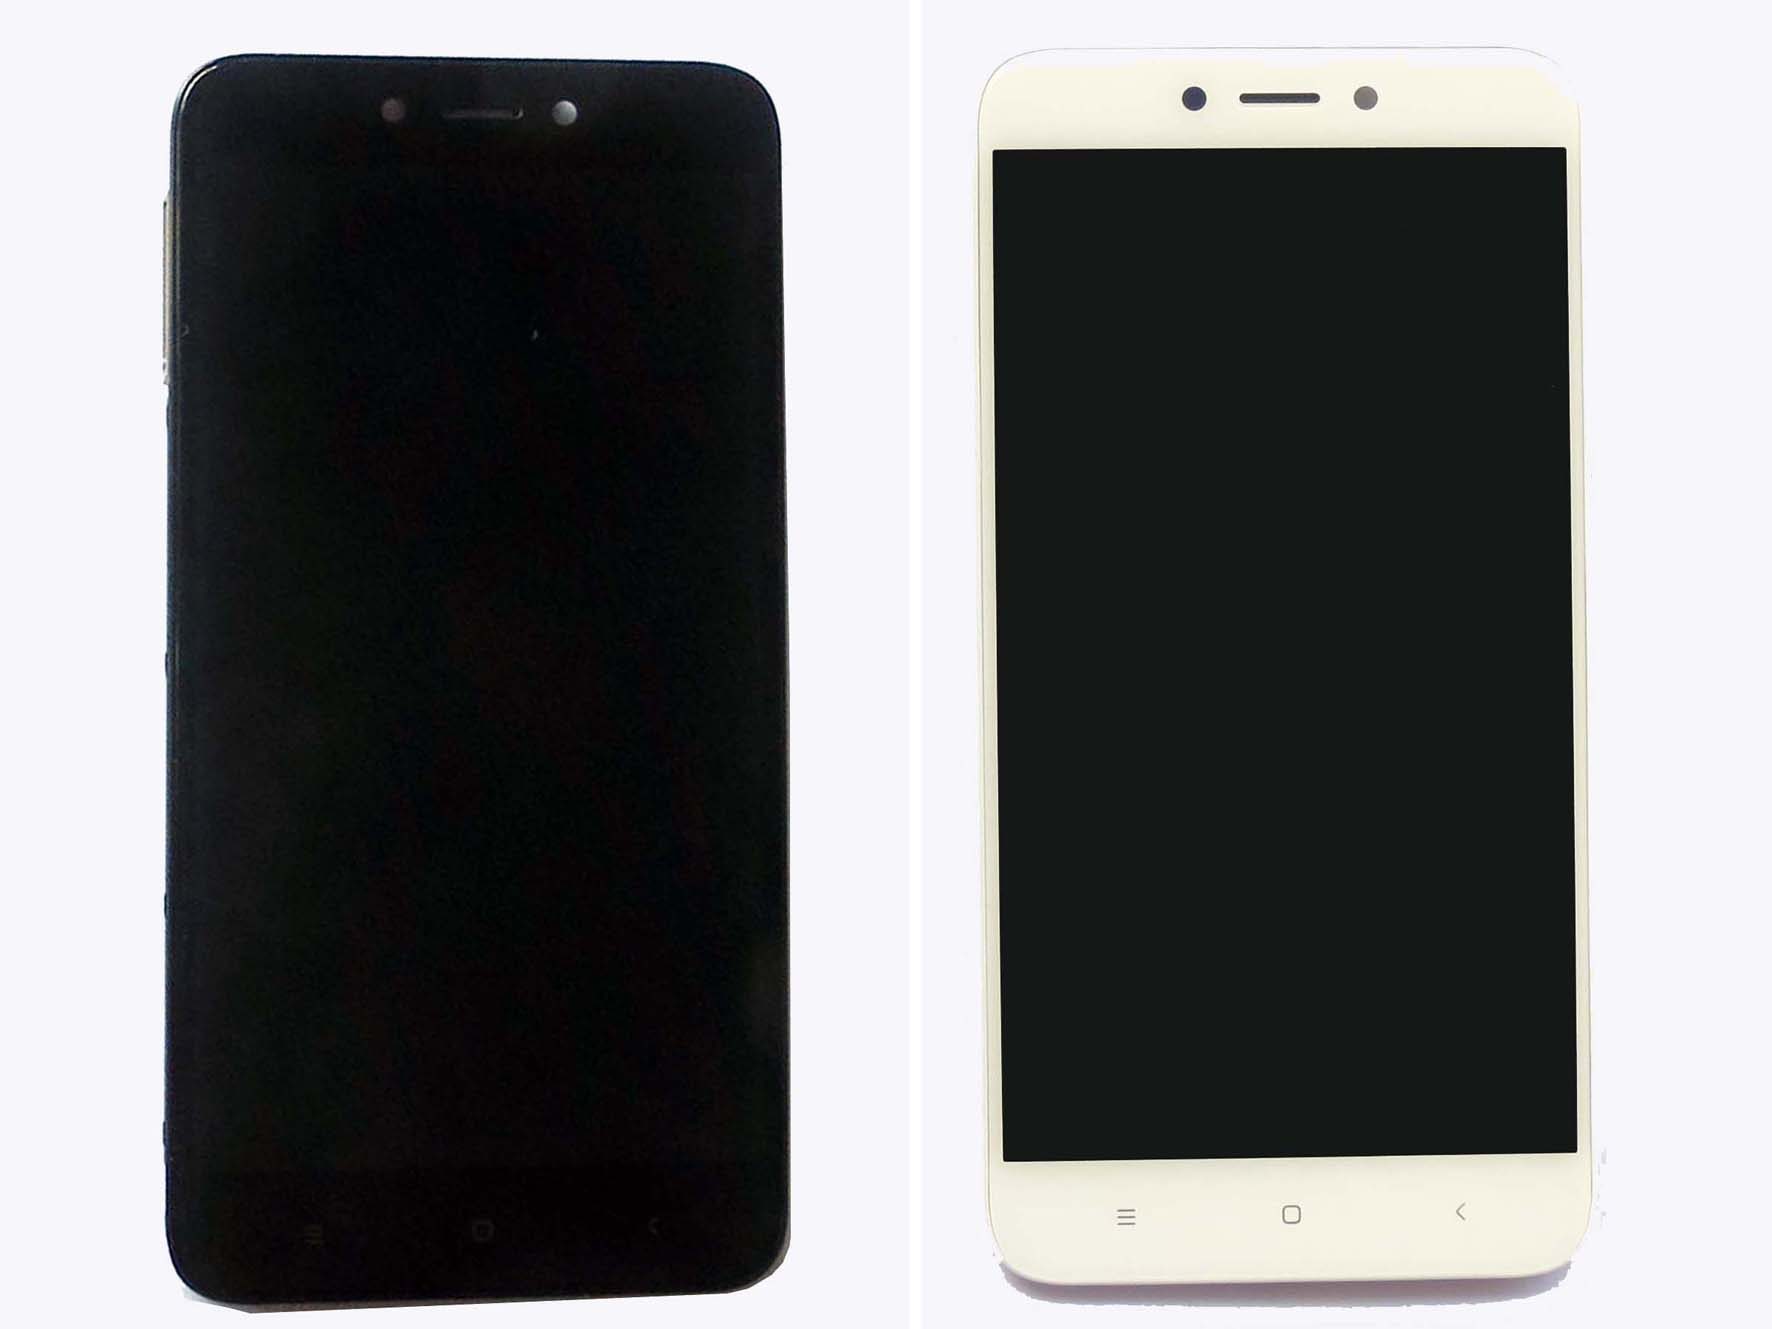 Original Complete screen with front housing for Redmi 4x – Black & White